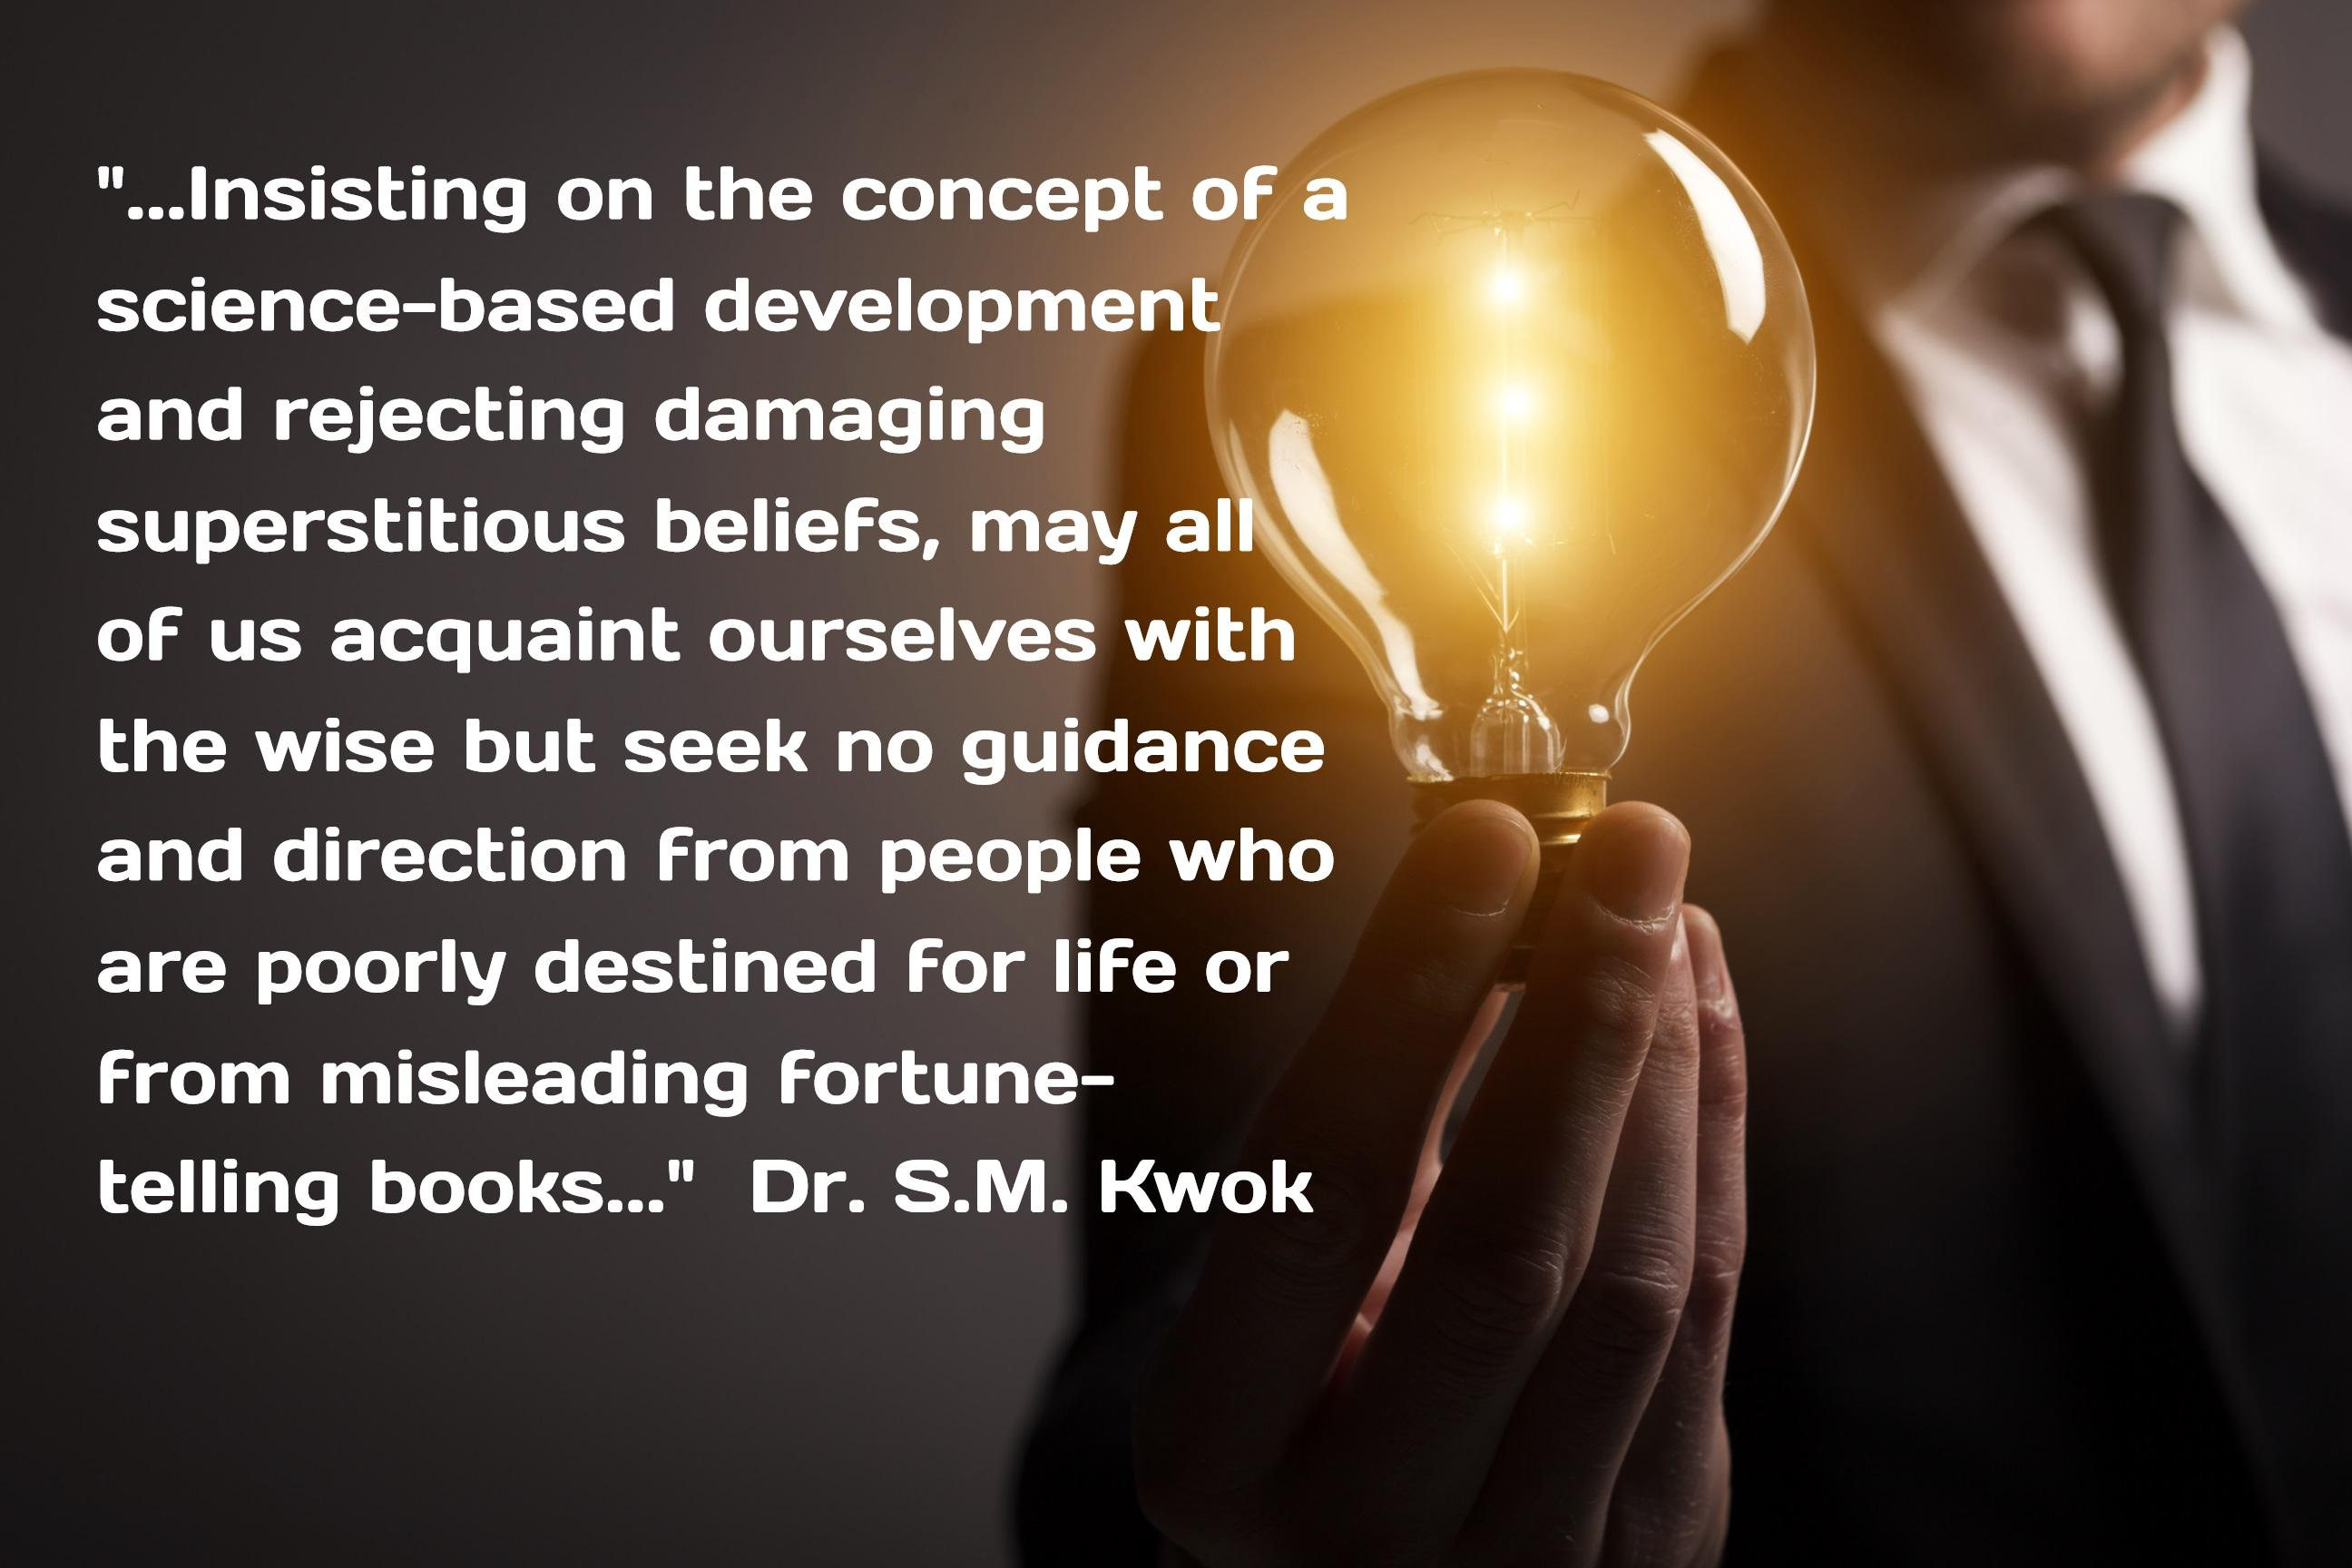 """...lnsisting on the concei, science-based developm * and rejecting damaging' f» superstitious beliefs, may at oF us acquaint ourselves wit» the wise but seek no guidance and direction From people who are poorly destined For liFe or From misleading Fortune- telling books..."" Dr. s.M. Kwok I} _ _  https://inspirational.ly"